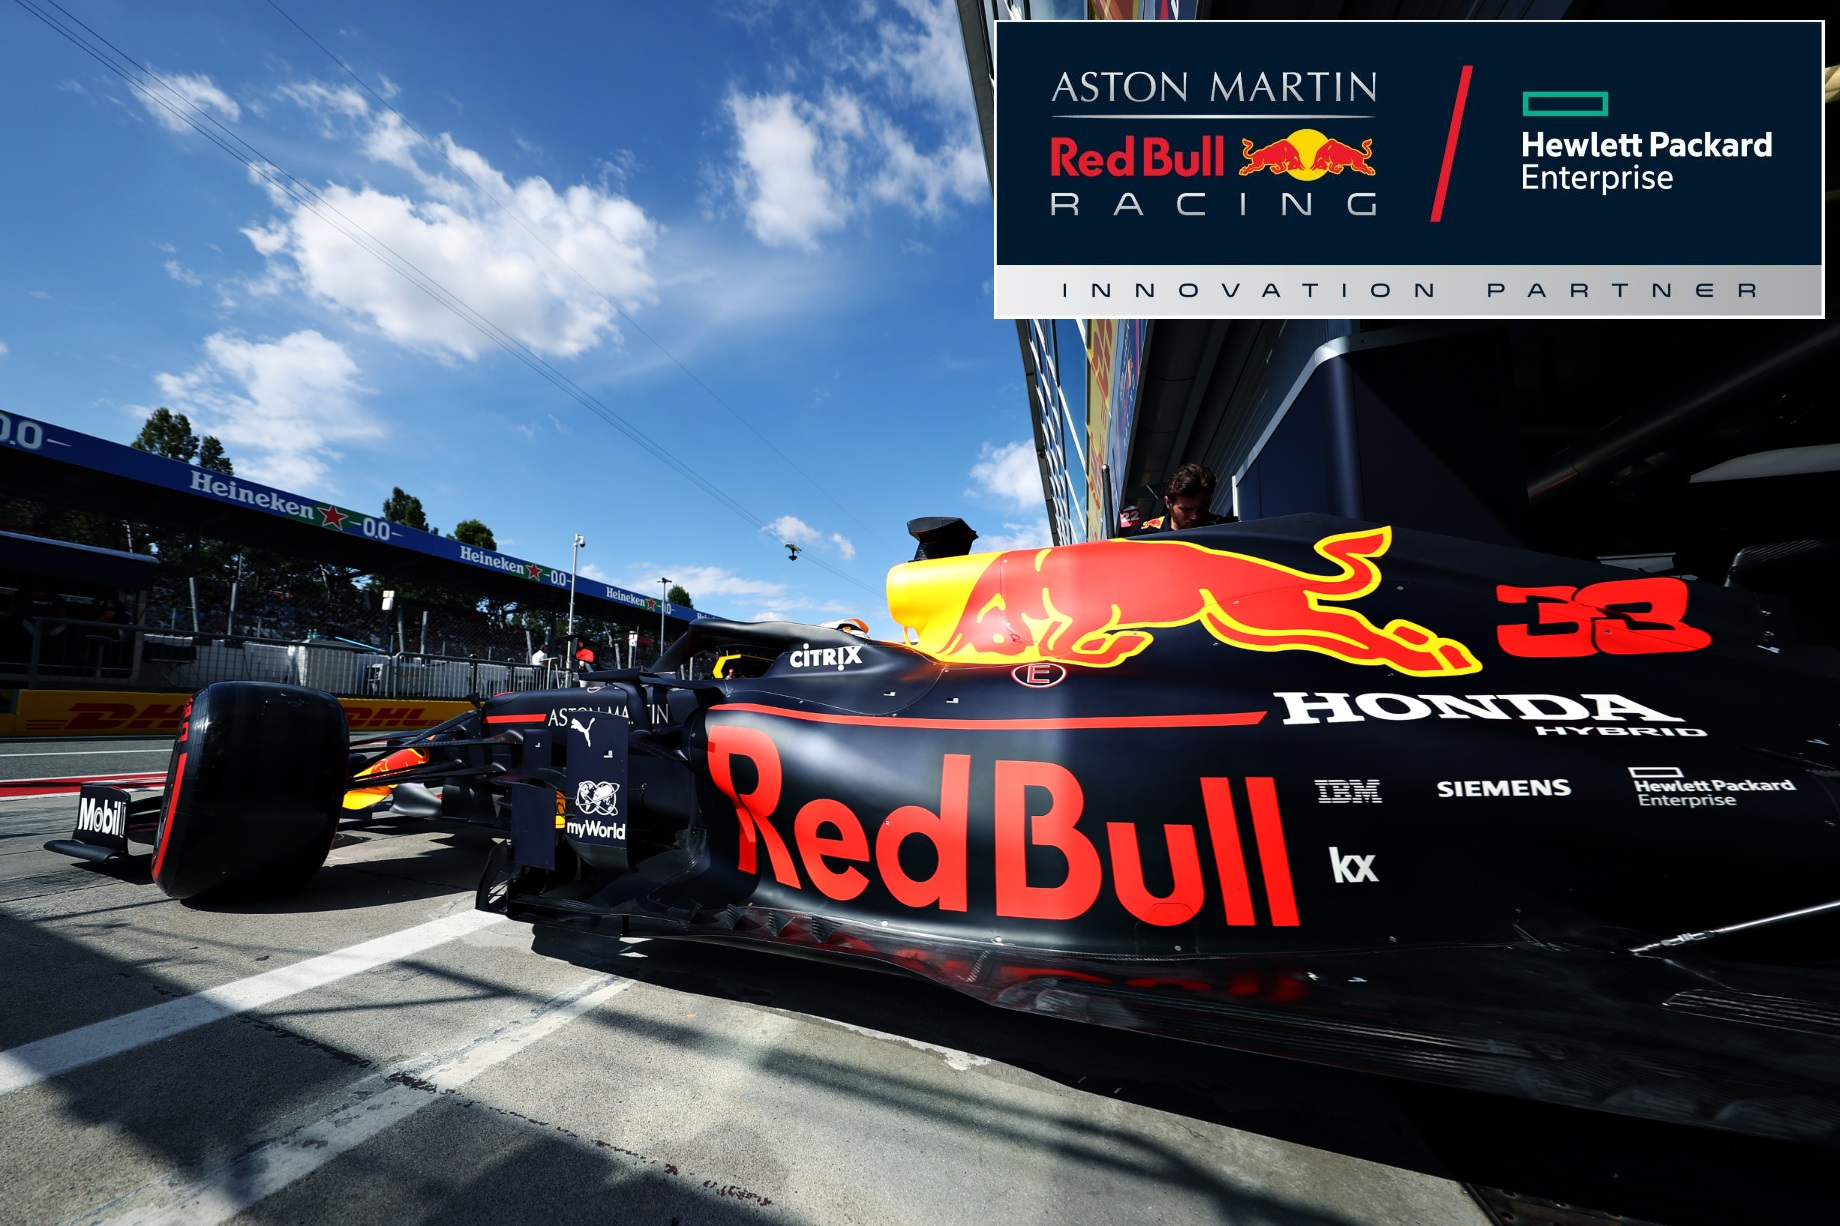 What Can Manufacturers Learn From The Way Aston Martin Red Bull Racing Innovates The Manufacturer